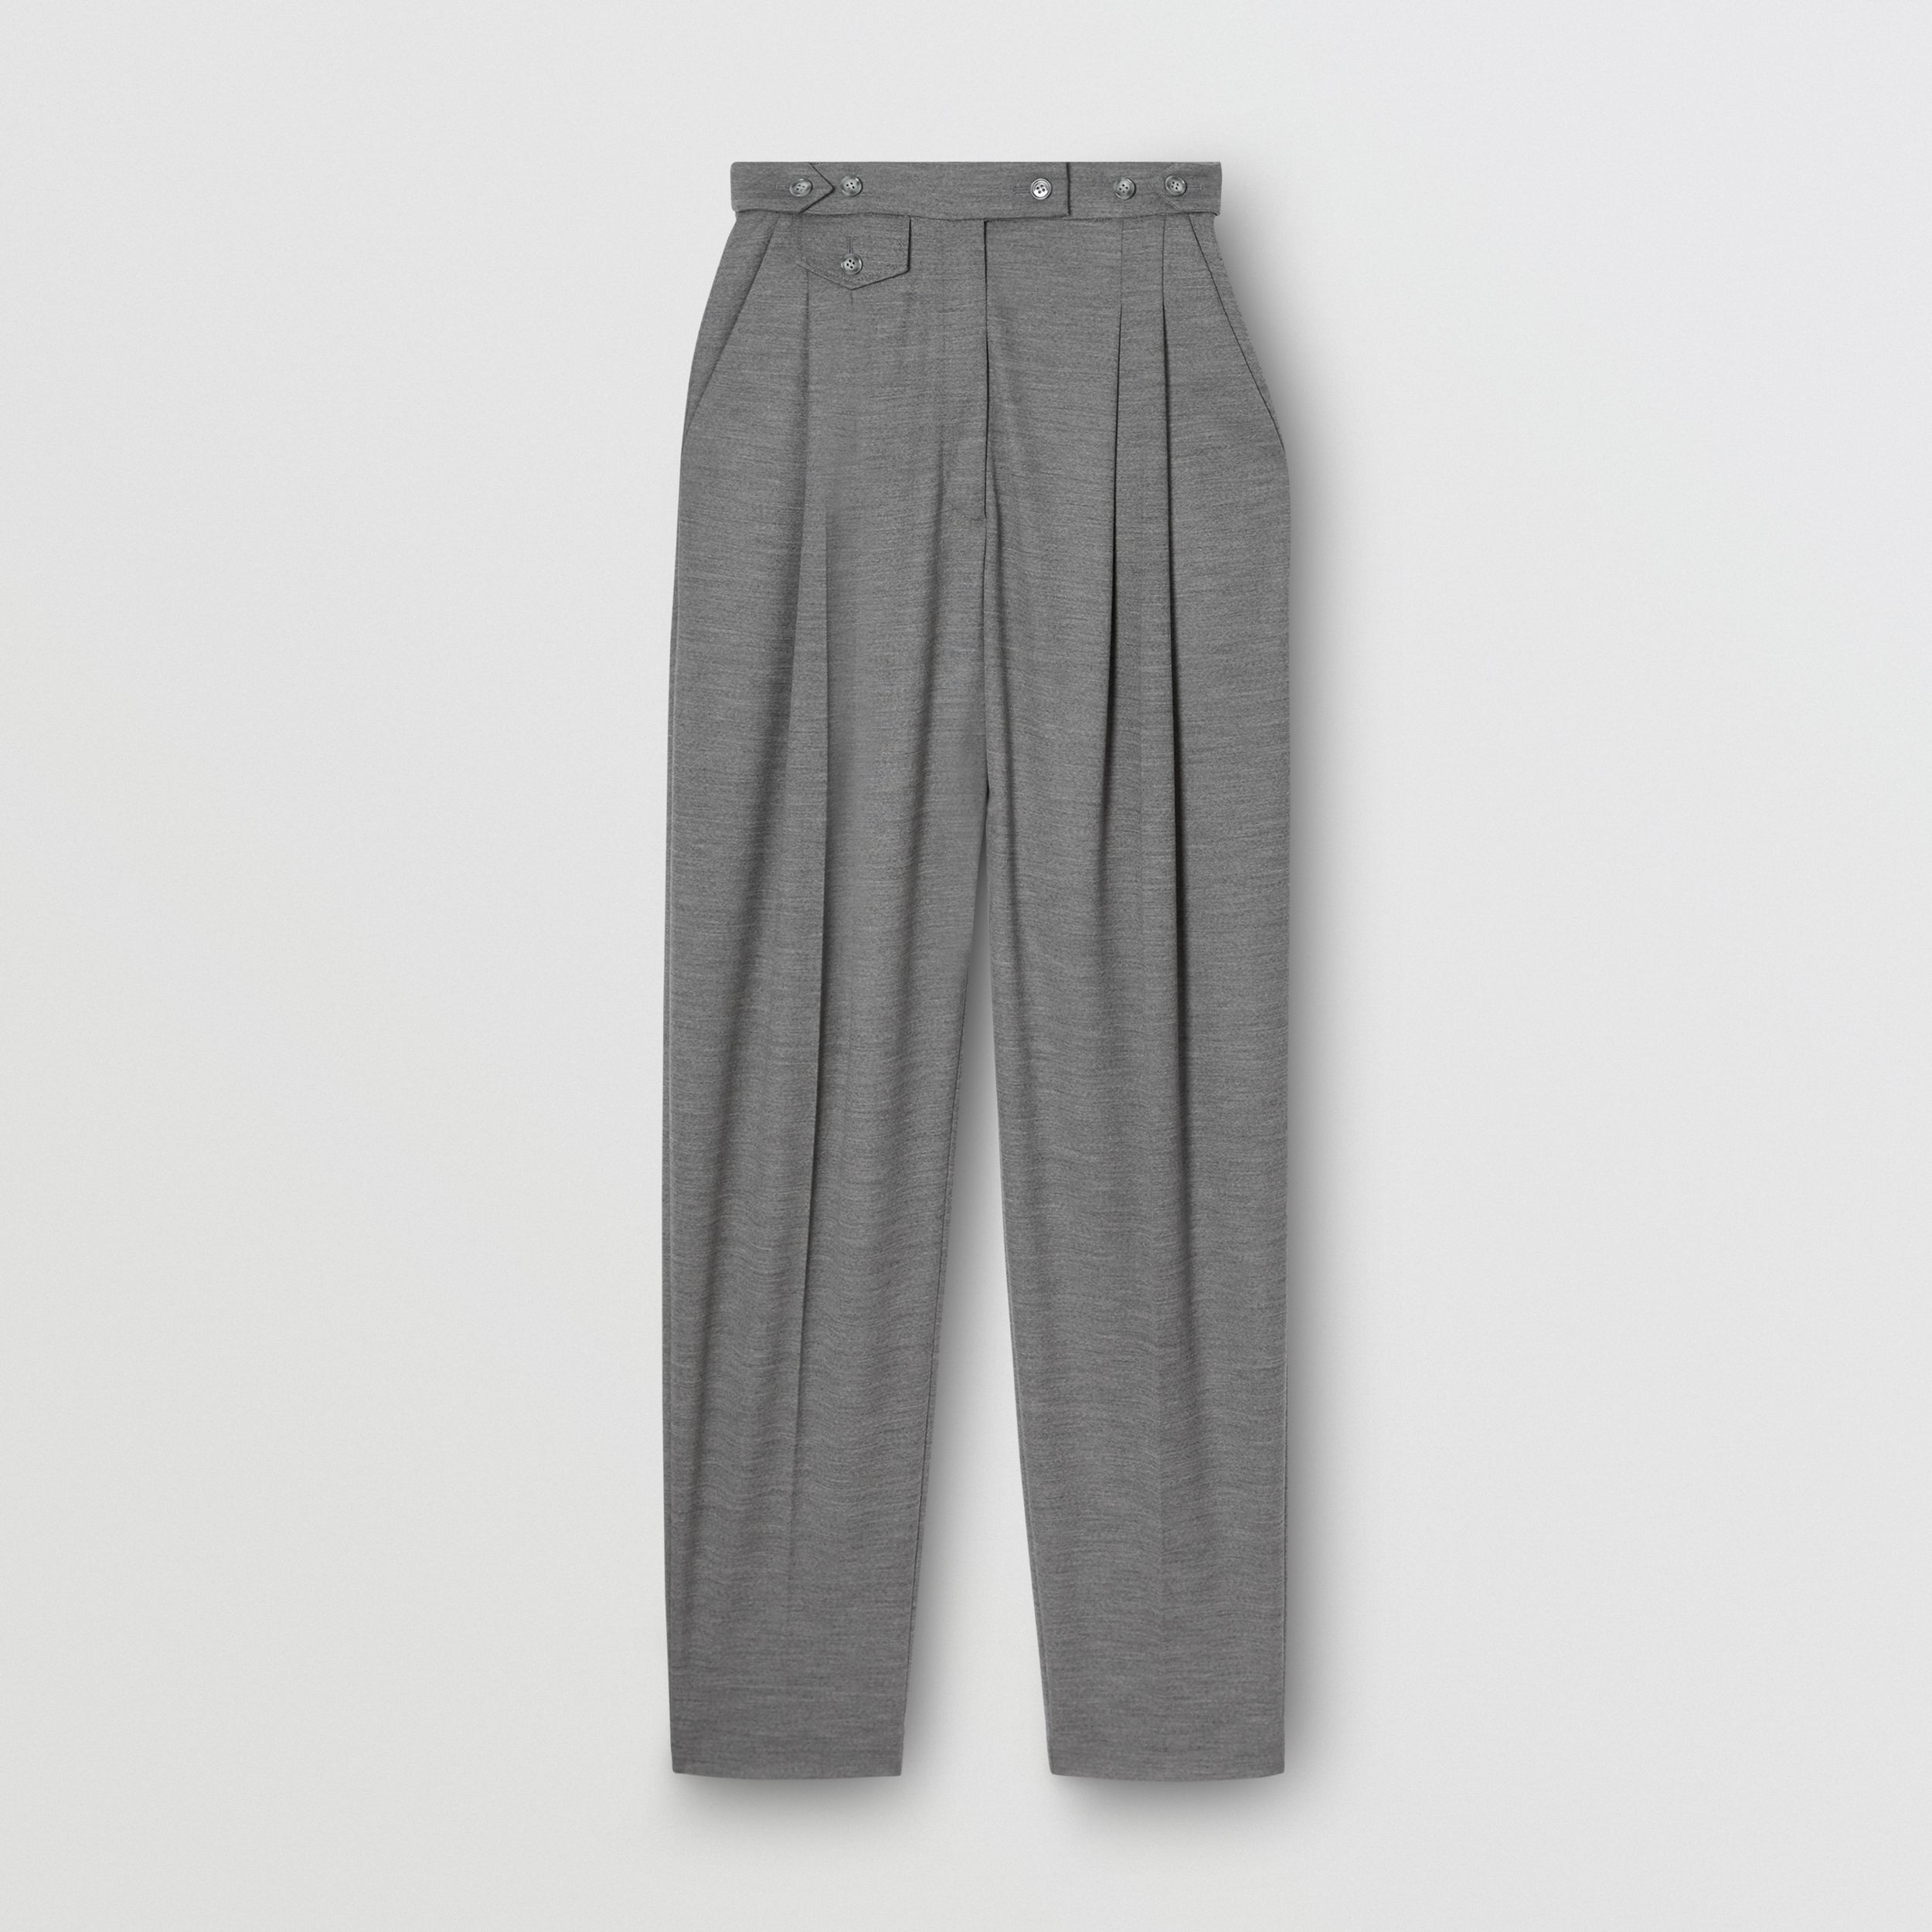 Cut-out Detail Wool Jersey Tailored Trousers in Cloud Grey - Women | Burberry - 1